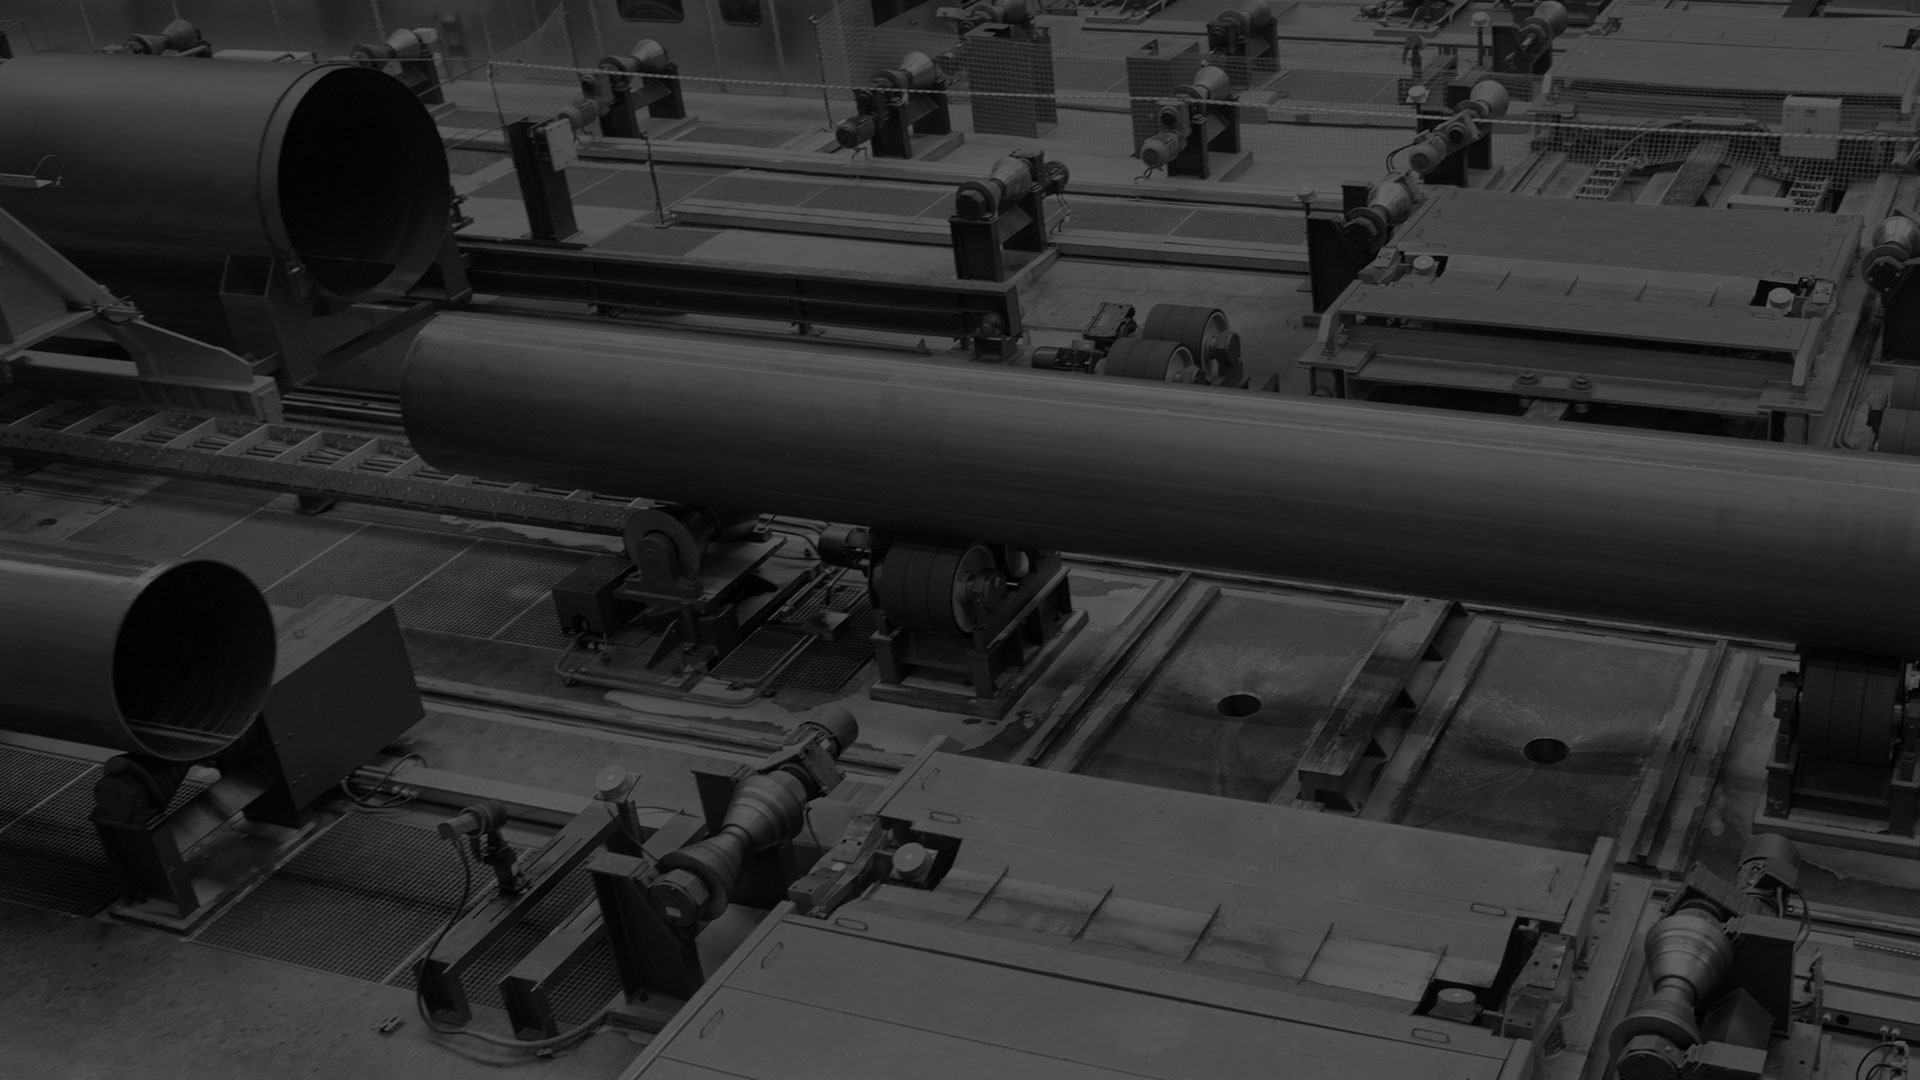 A darkened black and white image of a custom fabrication being manufacturer.